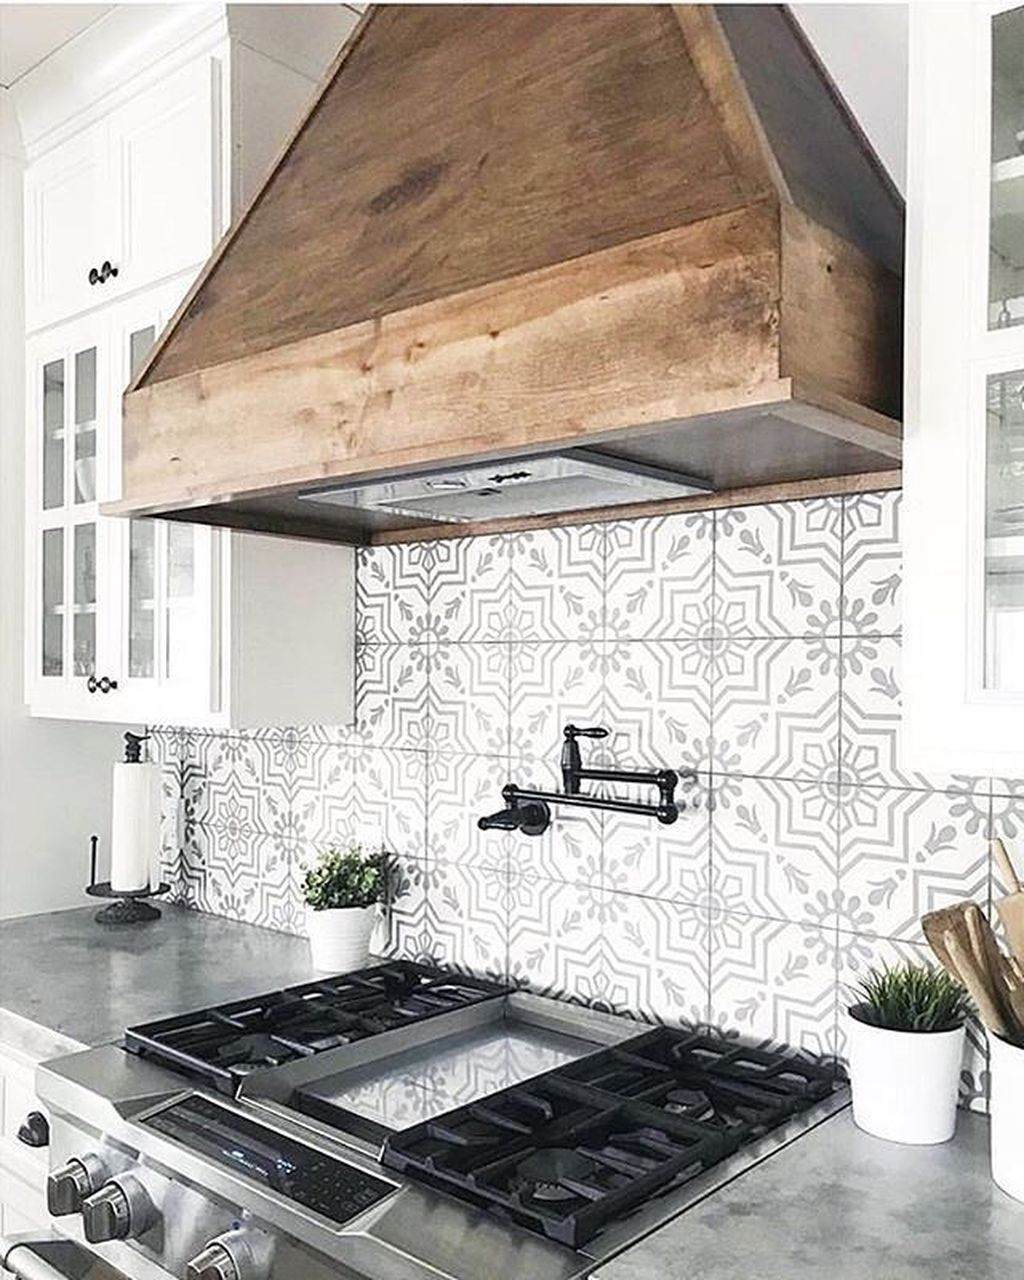 nice 48 cool modern farmhouse kitchen backsplash ideas farmhouse kitchen backsplash kitchen on farmhouse kitchen backsplash id=40213